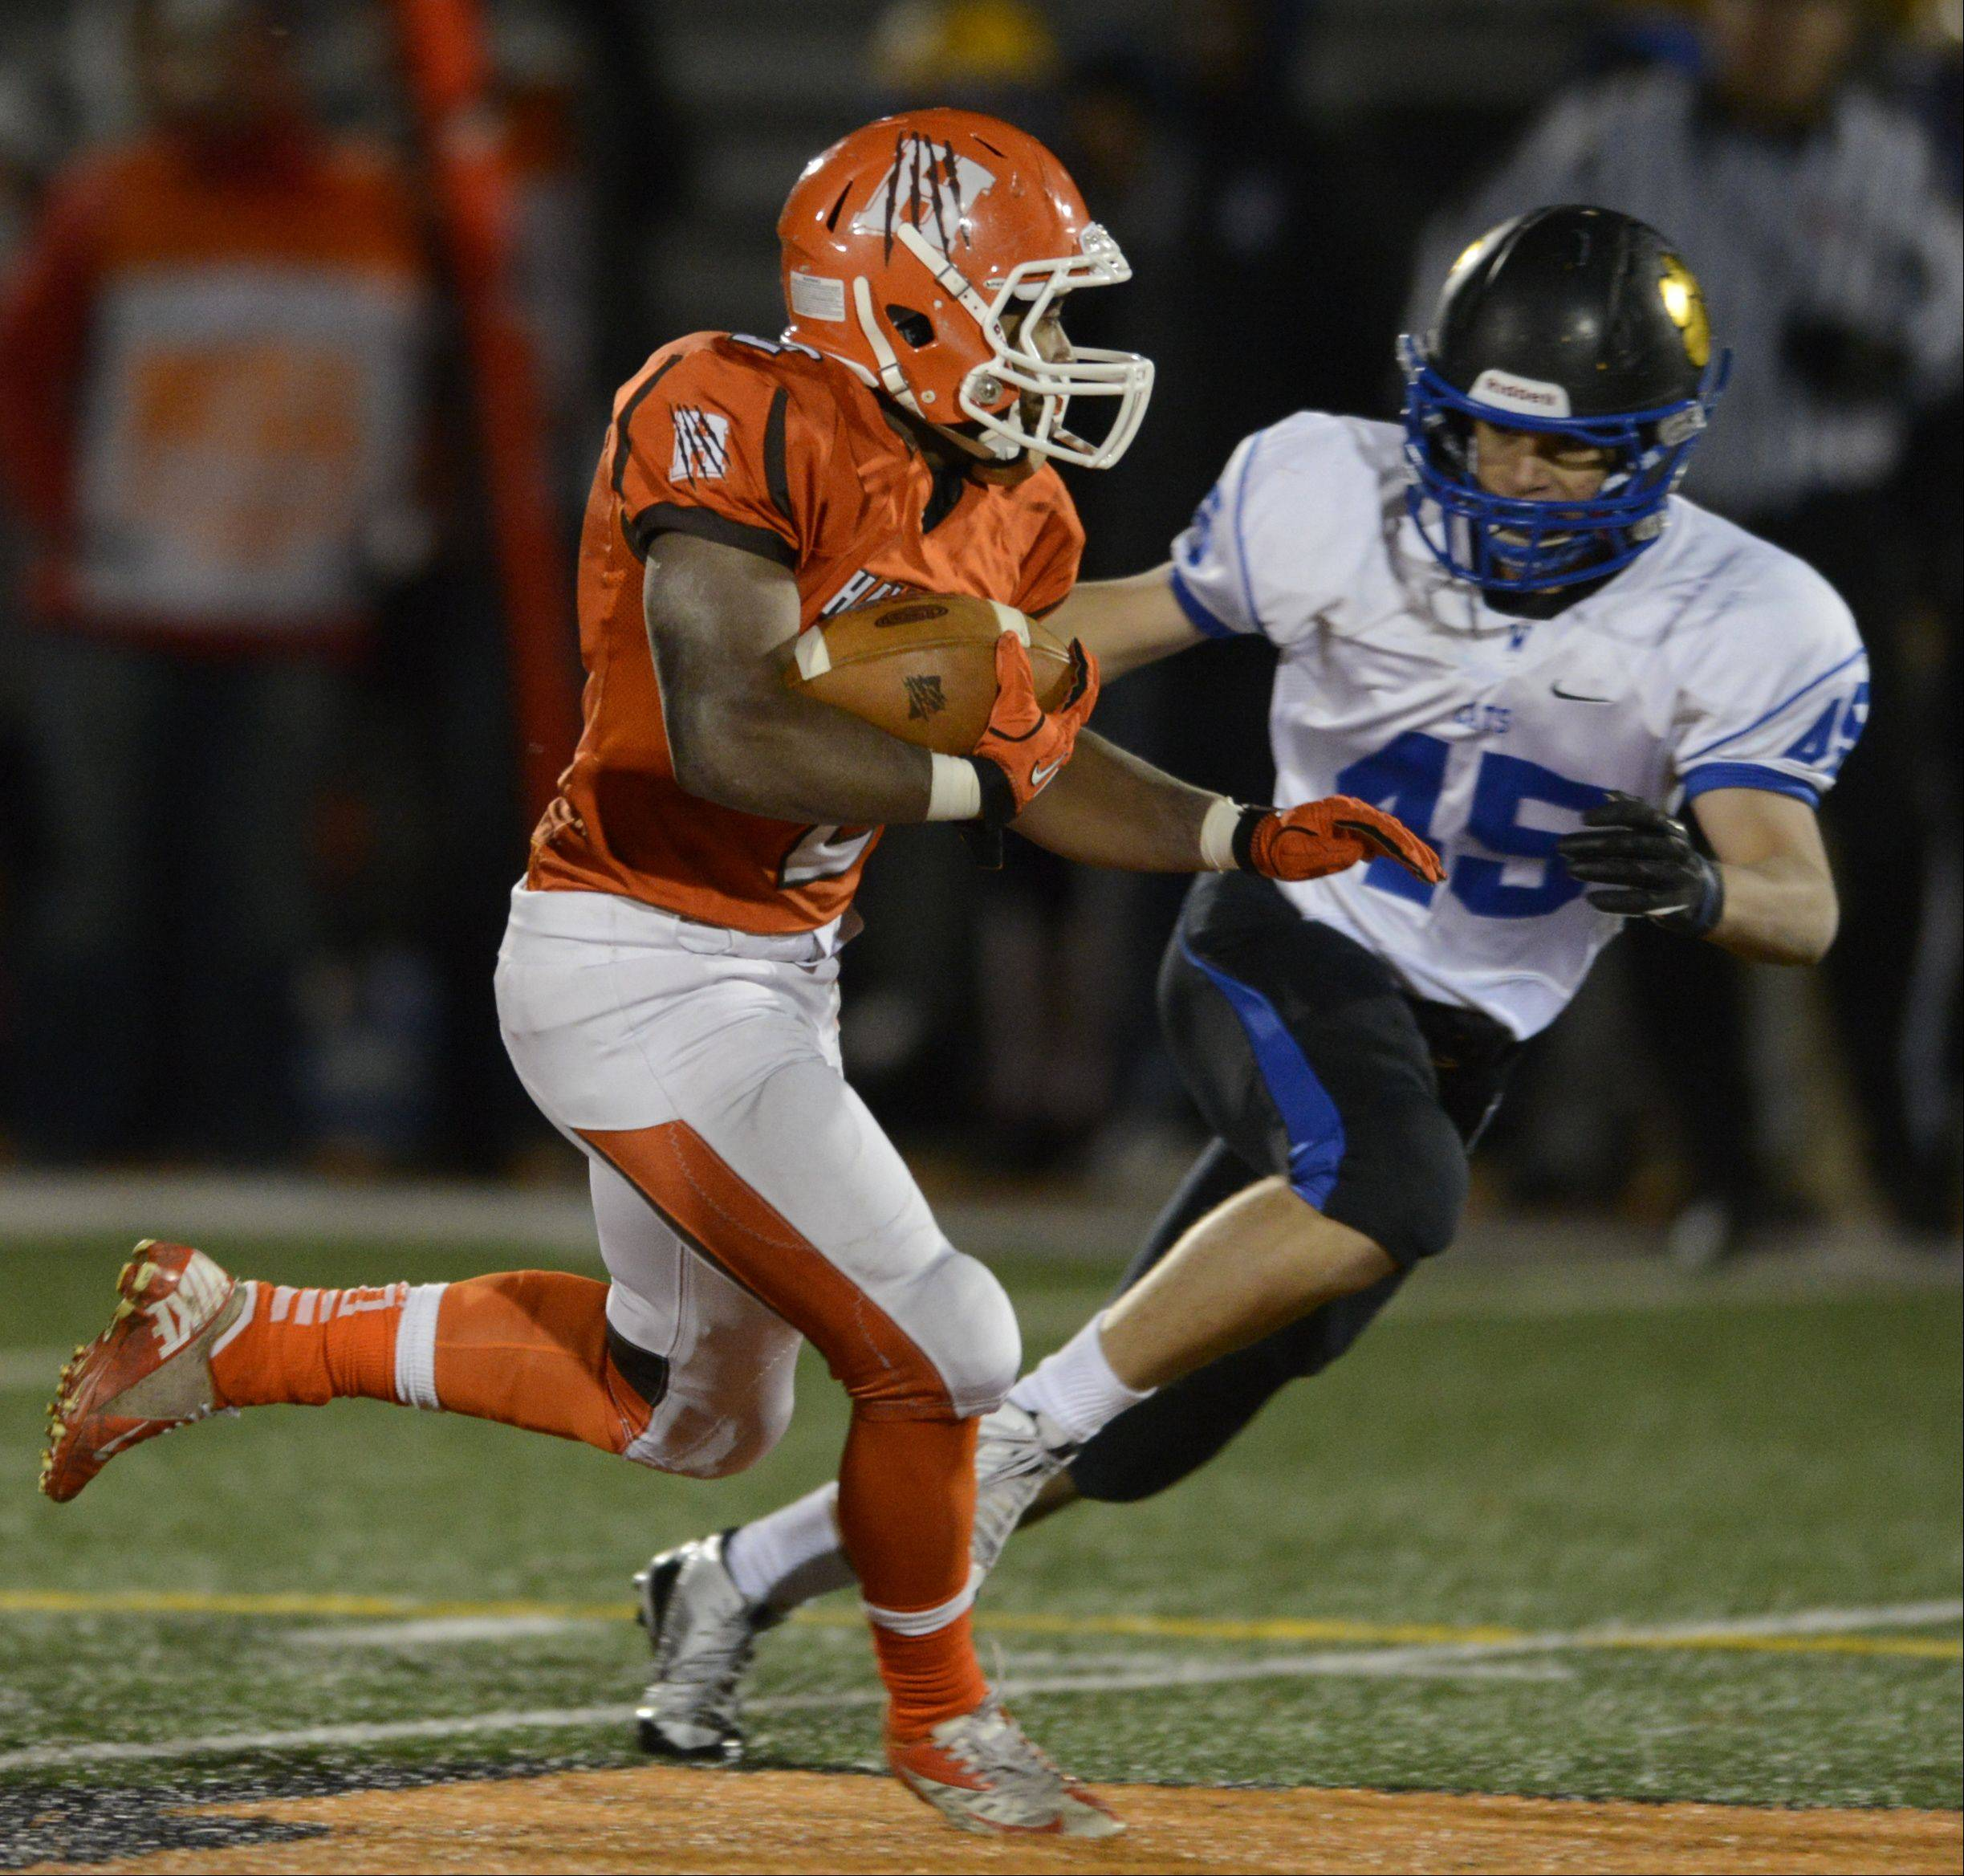 Week -9- Photos from the Hersey vs. Wheeling football game on Friday, October 25th, in Arlington Heights.